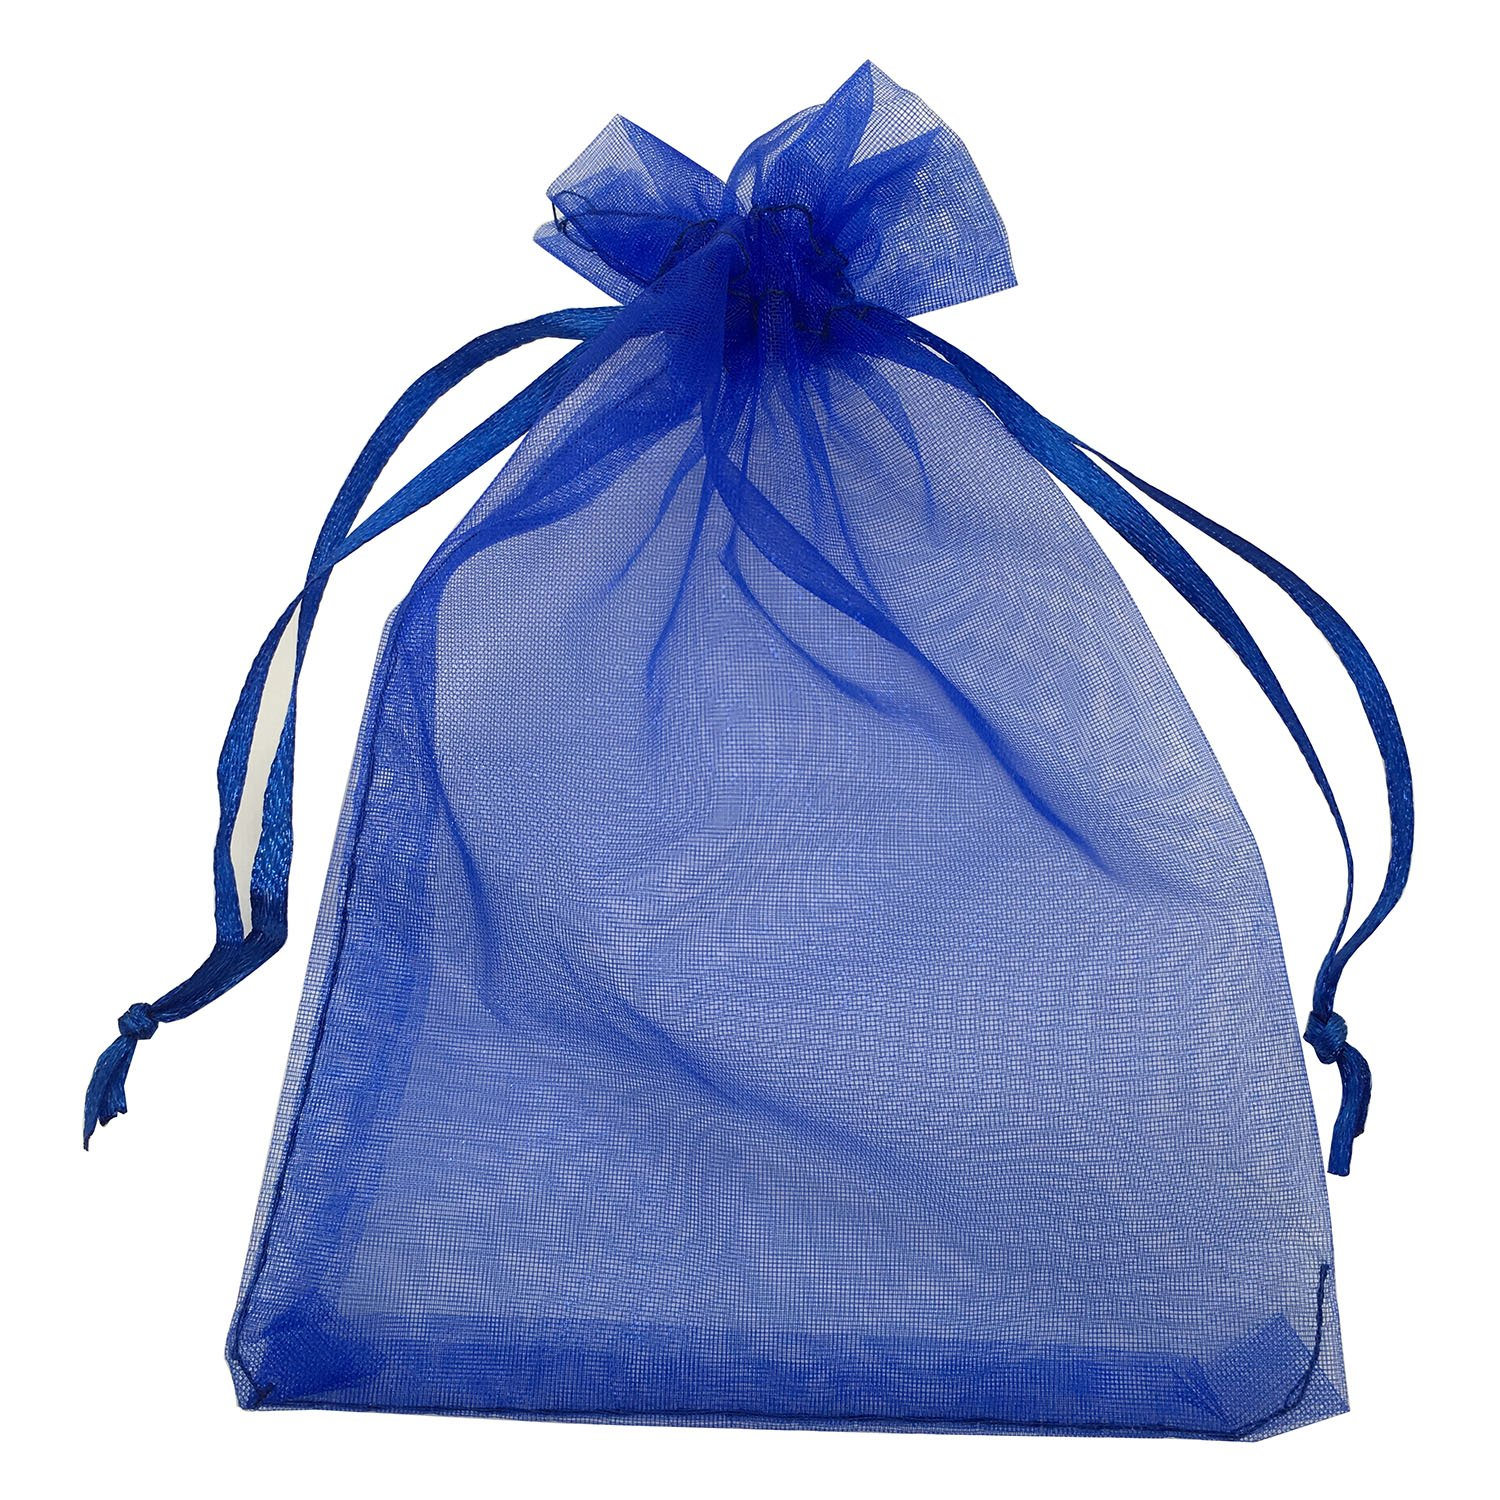 MELUOGE 100pcs 5X7 Inches Organza Drawstring Jewelry Pouches Bags Party Wedding Favor Gift Bags Candy Bags (Royal Blue) by MELUOGE